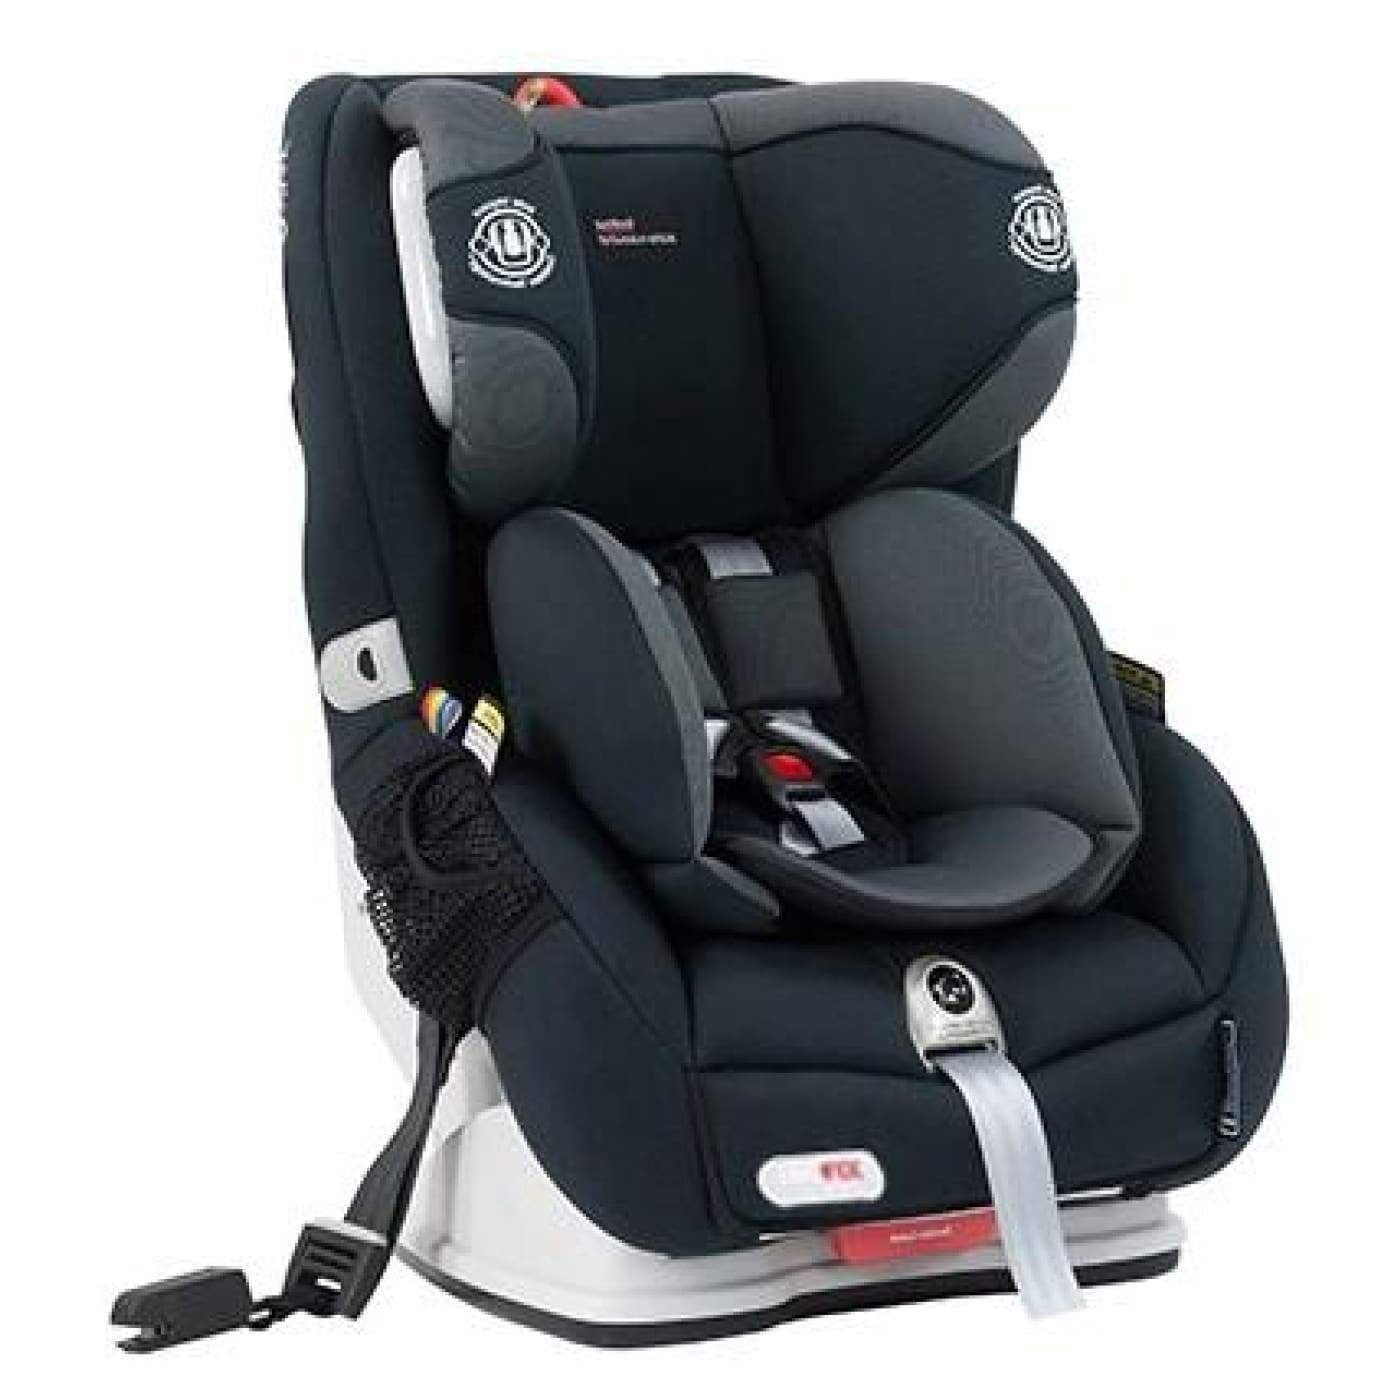 Britax SNS Millenia SICT Isofix Compatible Car Seat 0-4YR - Silhouette Black - CAR SEATS - CONV ISOFIX CAR SEATS (0-4YR)